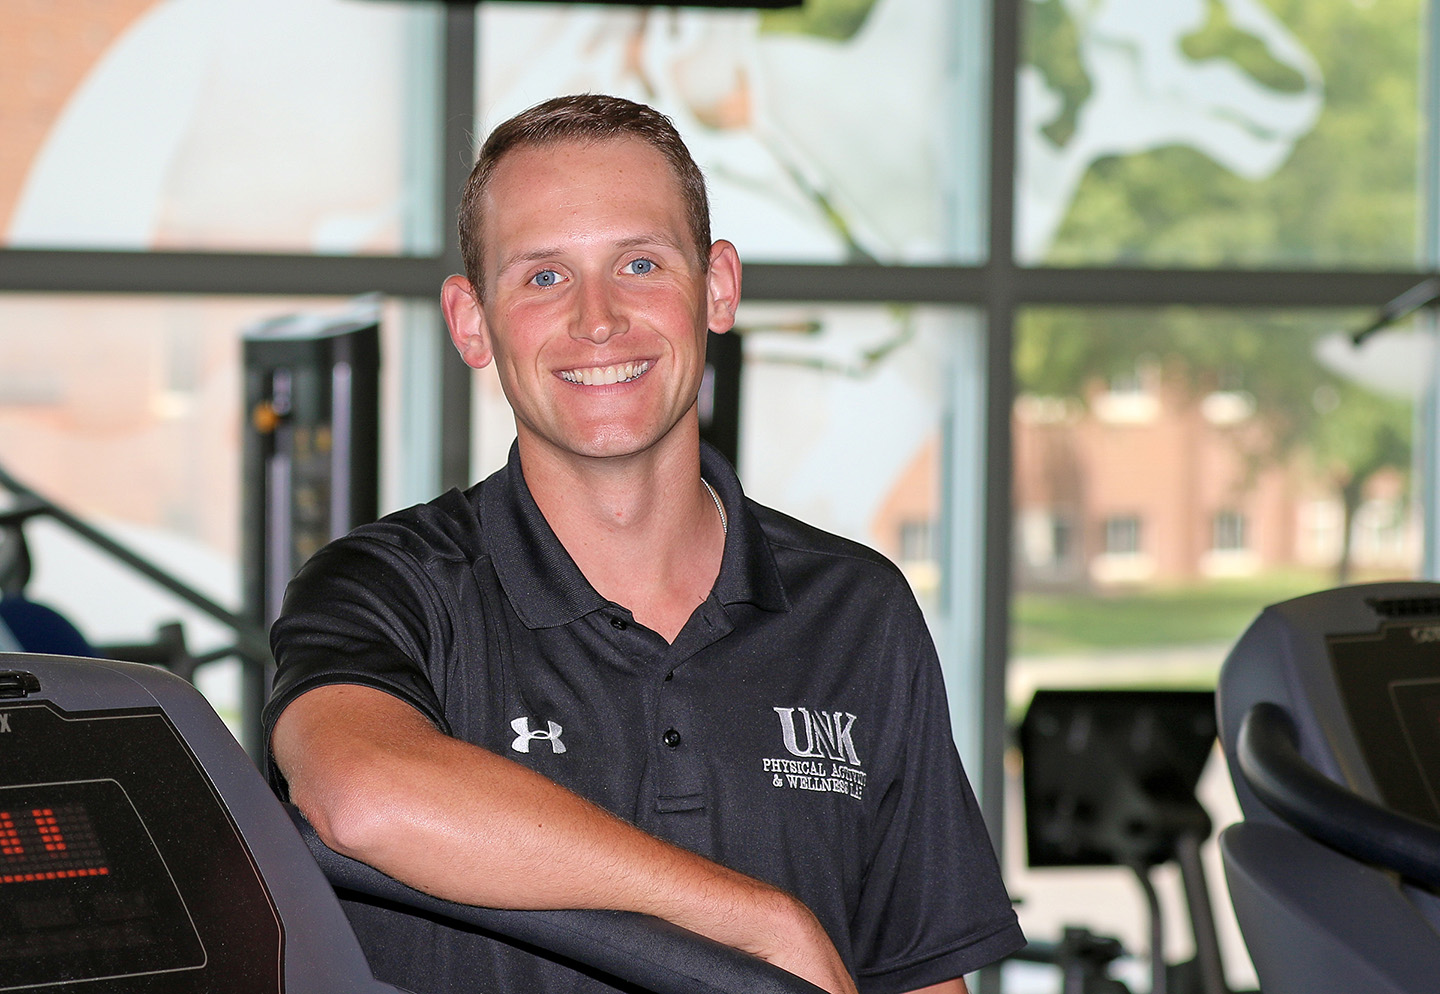 John Masker graduates Friday with a master's degree in physical education and exercise science. He worked as a graduate assistant in UNK's Department of Kinesiology and Sport Sciences and the Physical Activity and Wellness Lab.